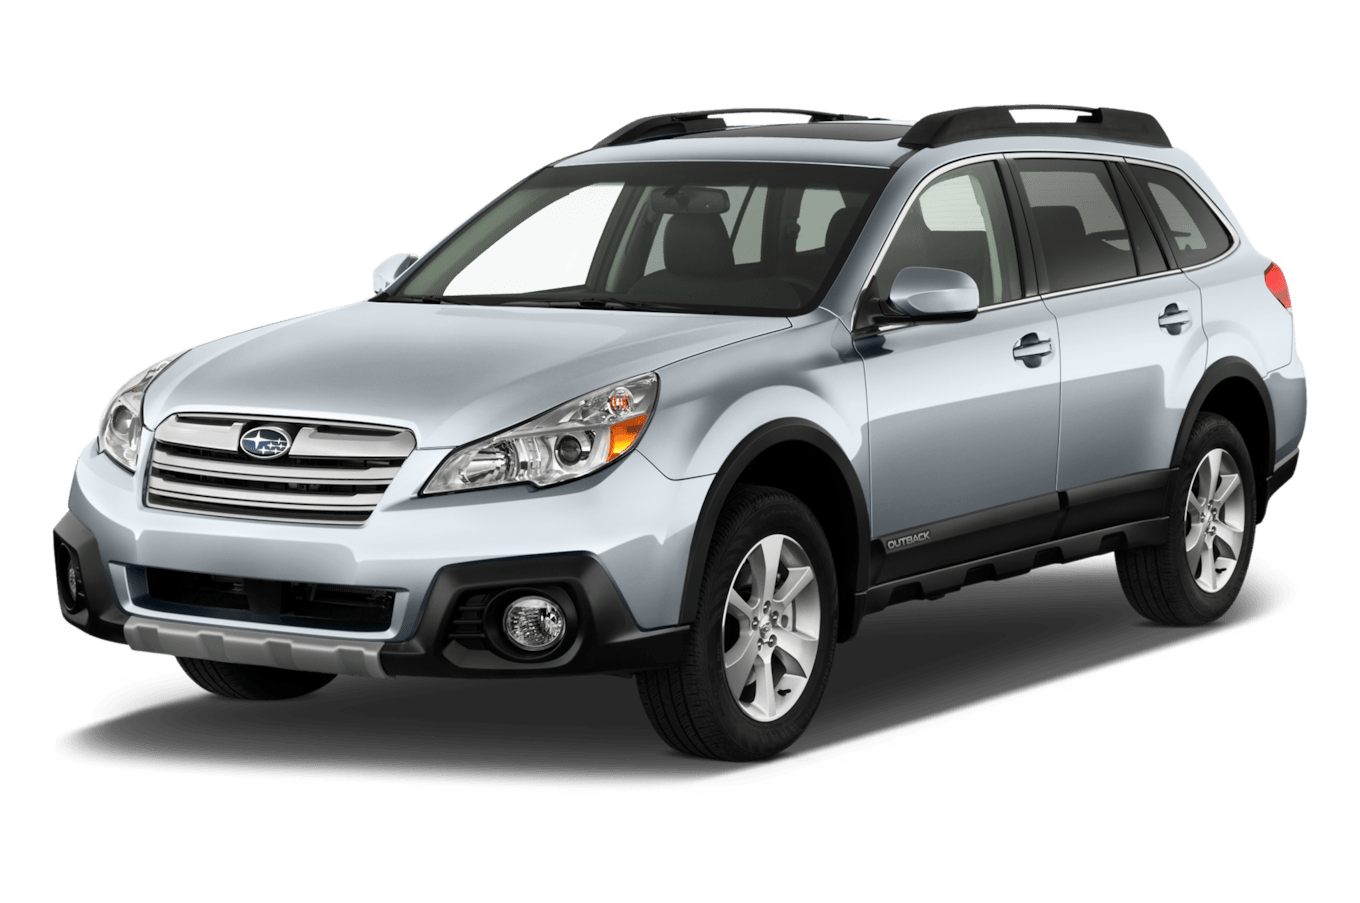 hight resolution of 2013 subaru outback reviews research outback prices specs wiring harness in addition 2016 subaru outback wagon further subaru